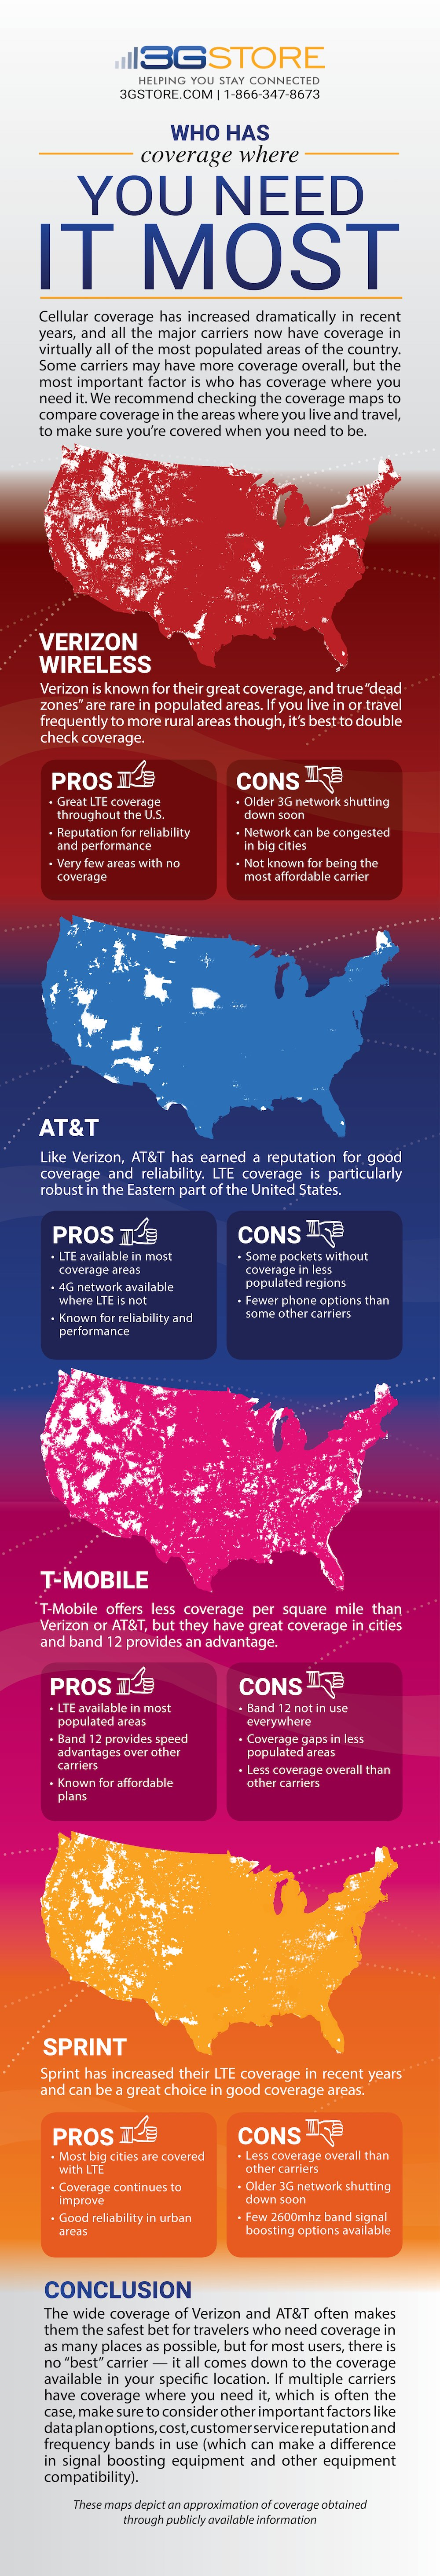 3G/4G Coverage Maps - Verizon, AT&T, T-Mobile and Sprint